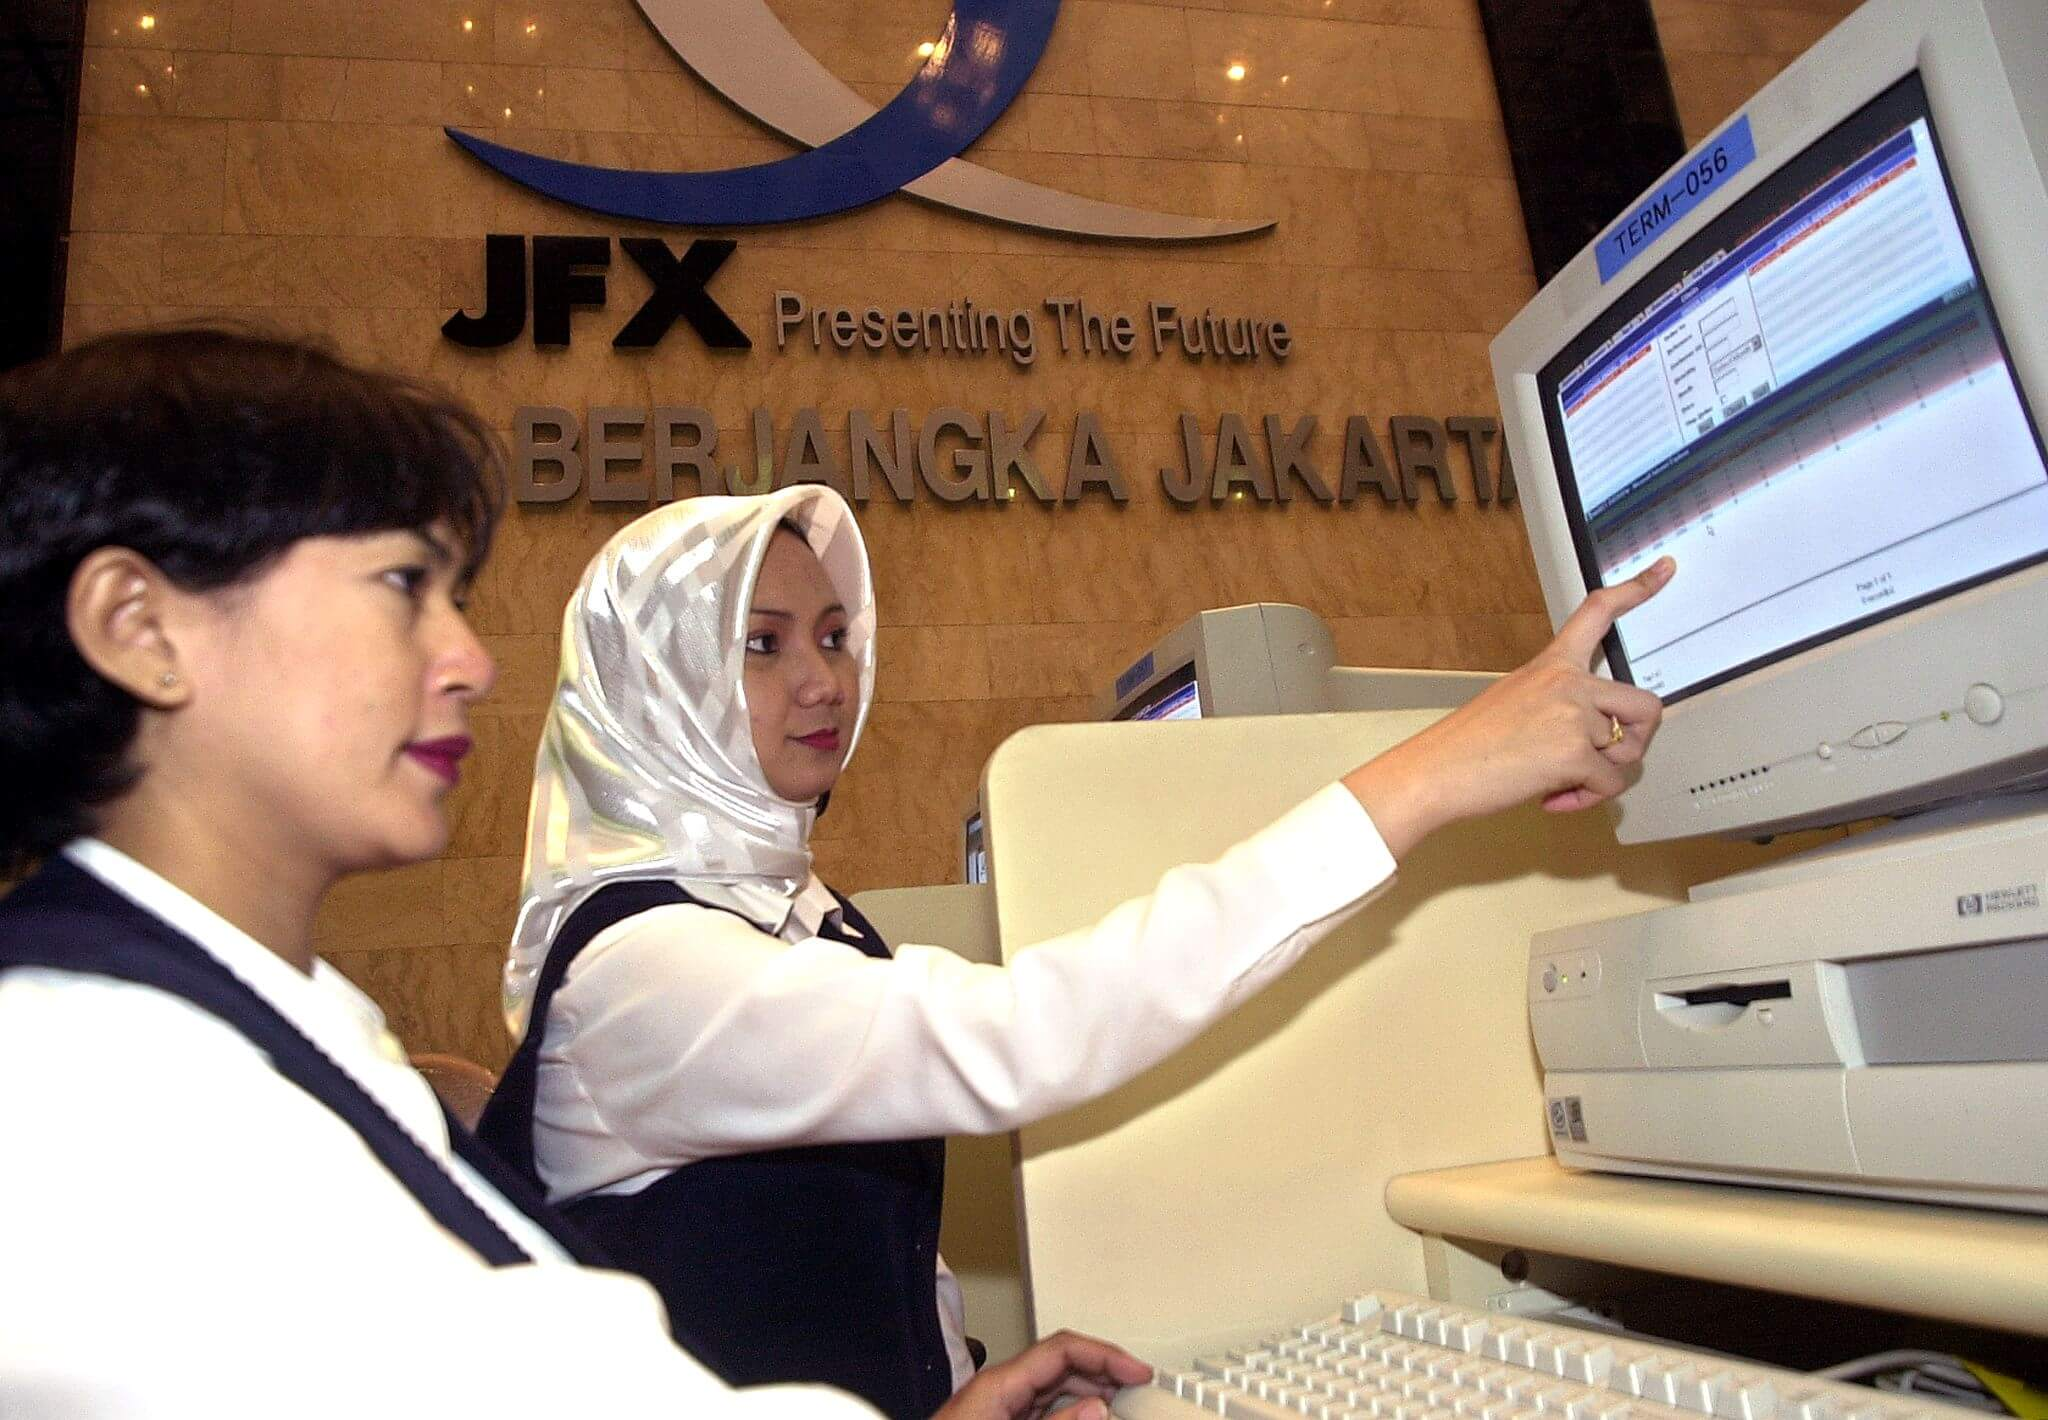 Jakarta Futures Exchange's staff during the inception of the company. Source: AFP PHOTO/Weda